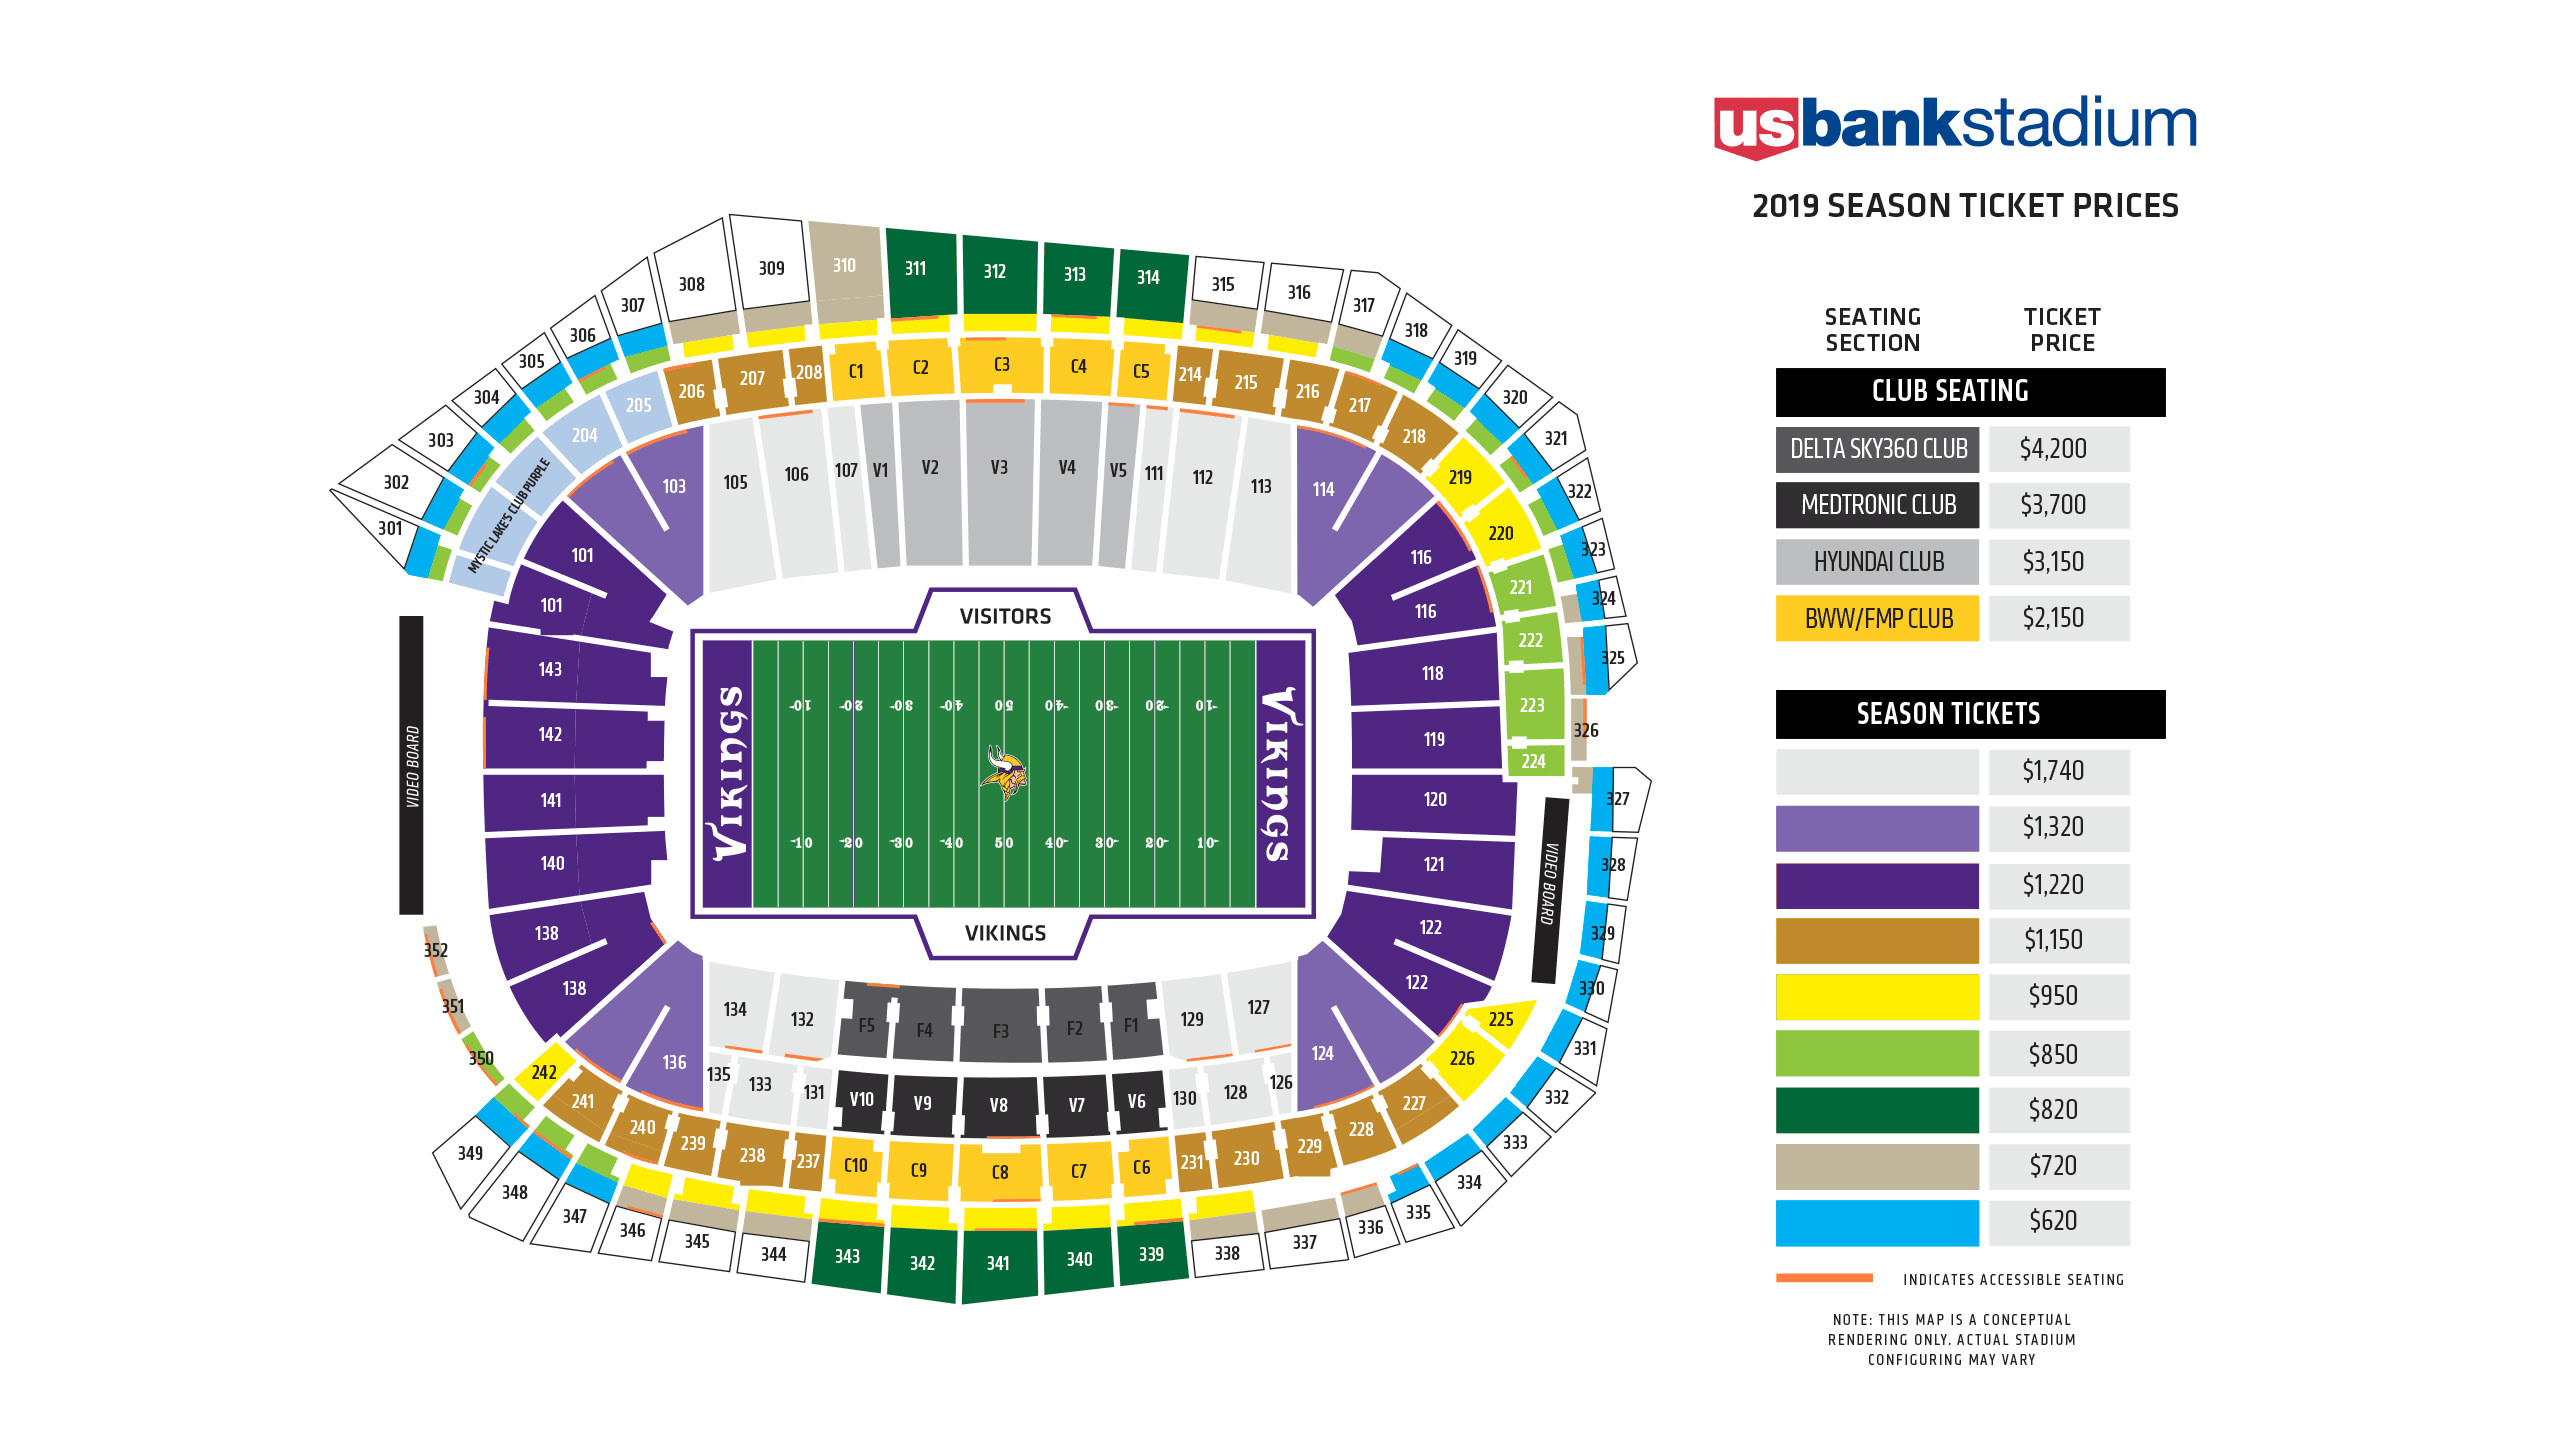 Vikings Seating Chart At Us Bank Stadium Minnesota Vikings - Us-map-nfl-teams